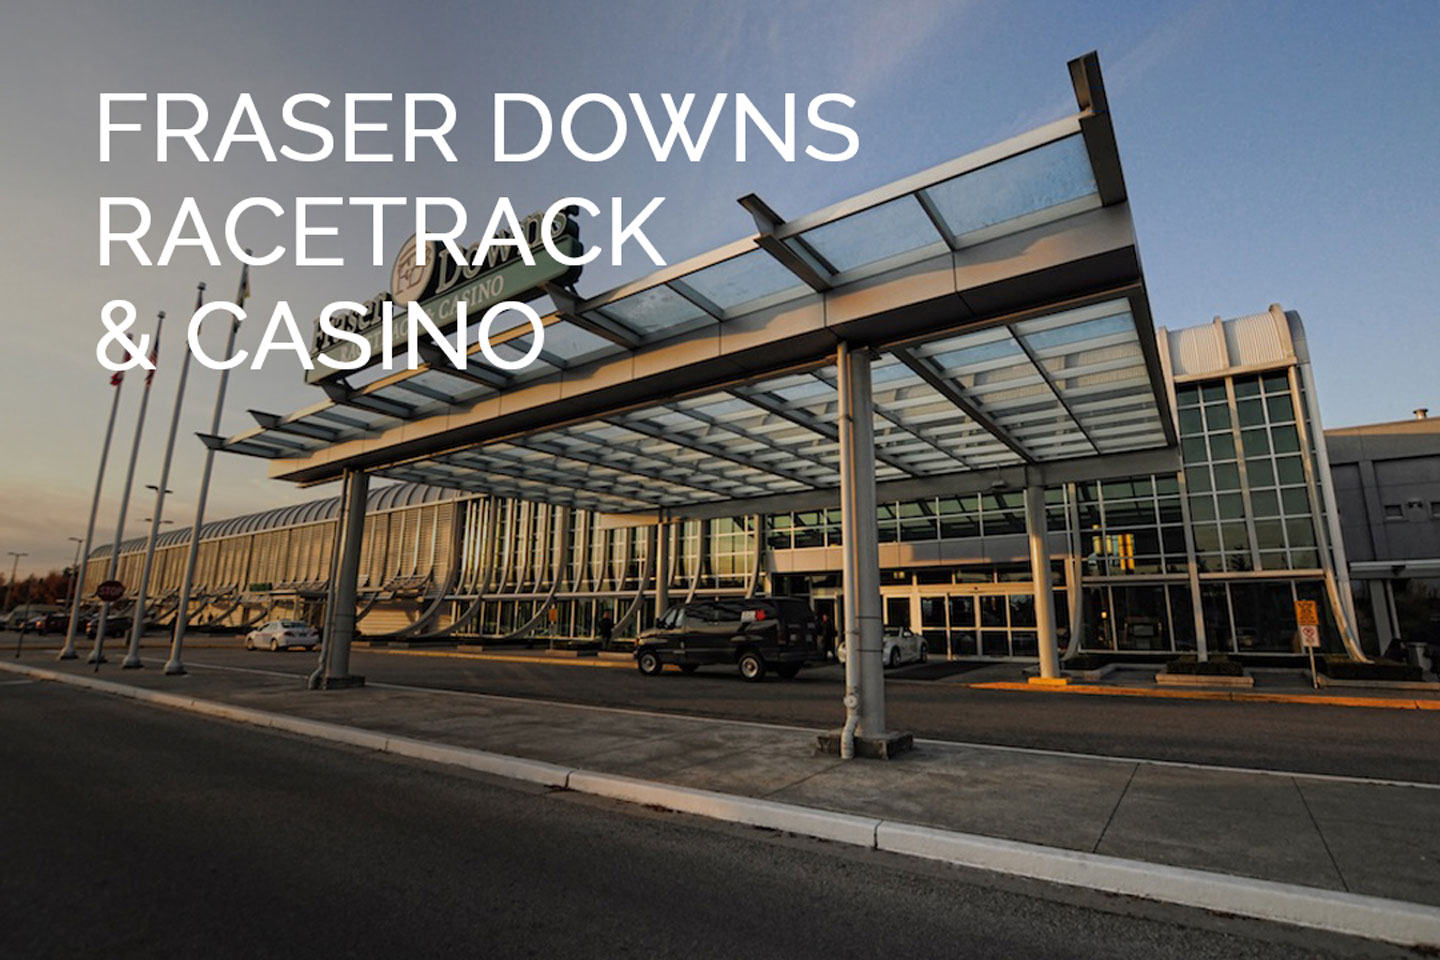 Fraser Downs Racetrack and Casino